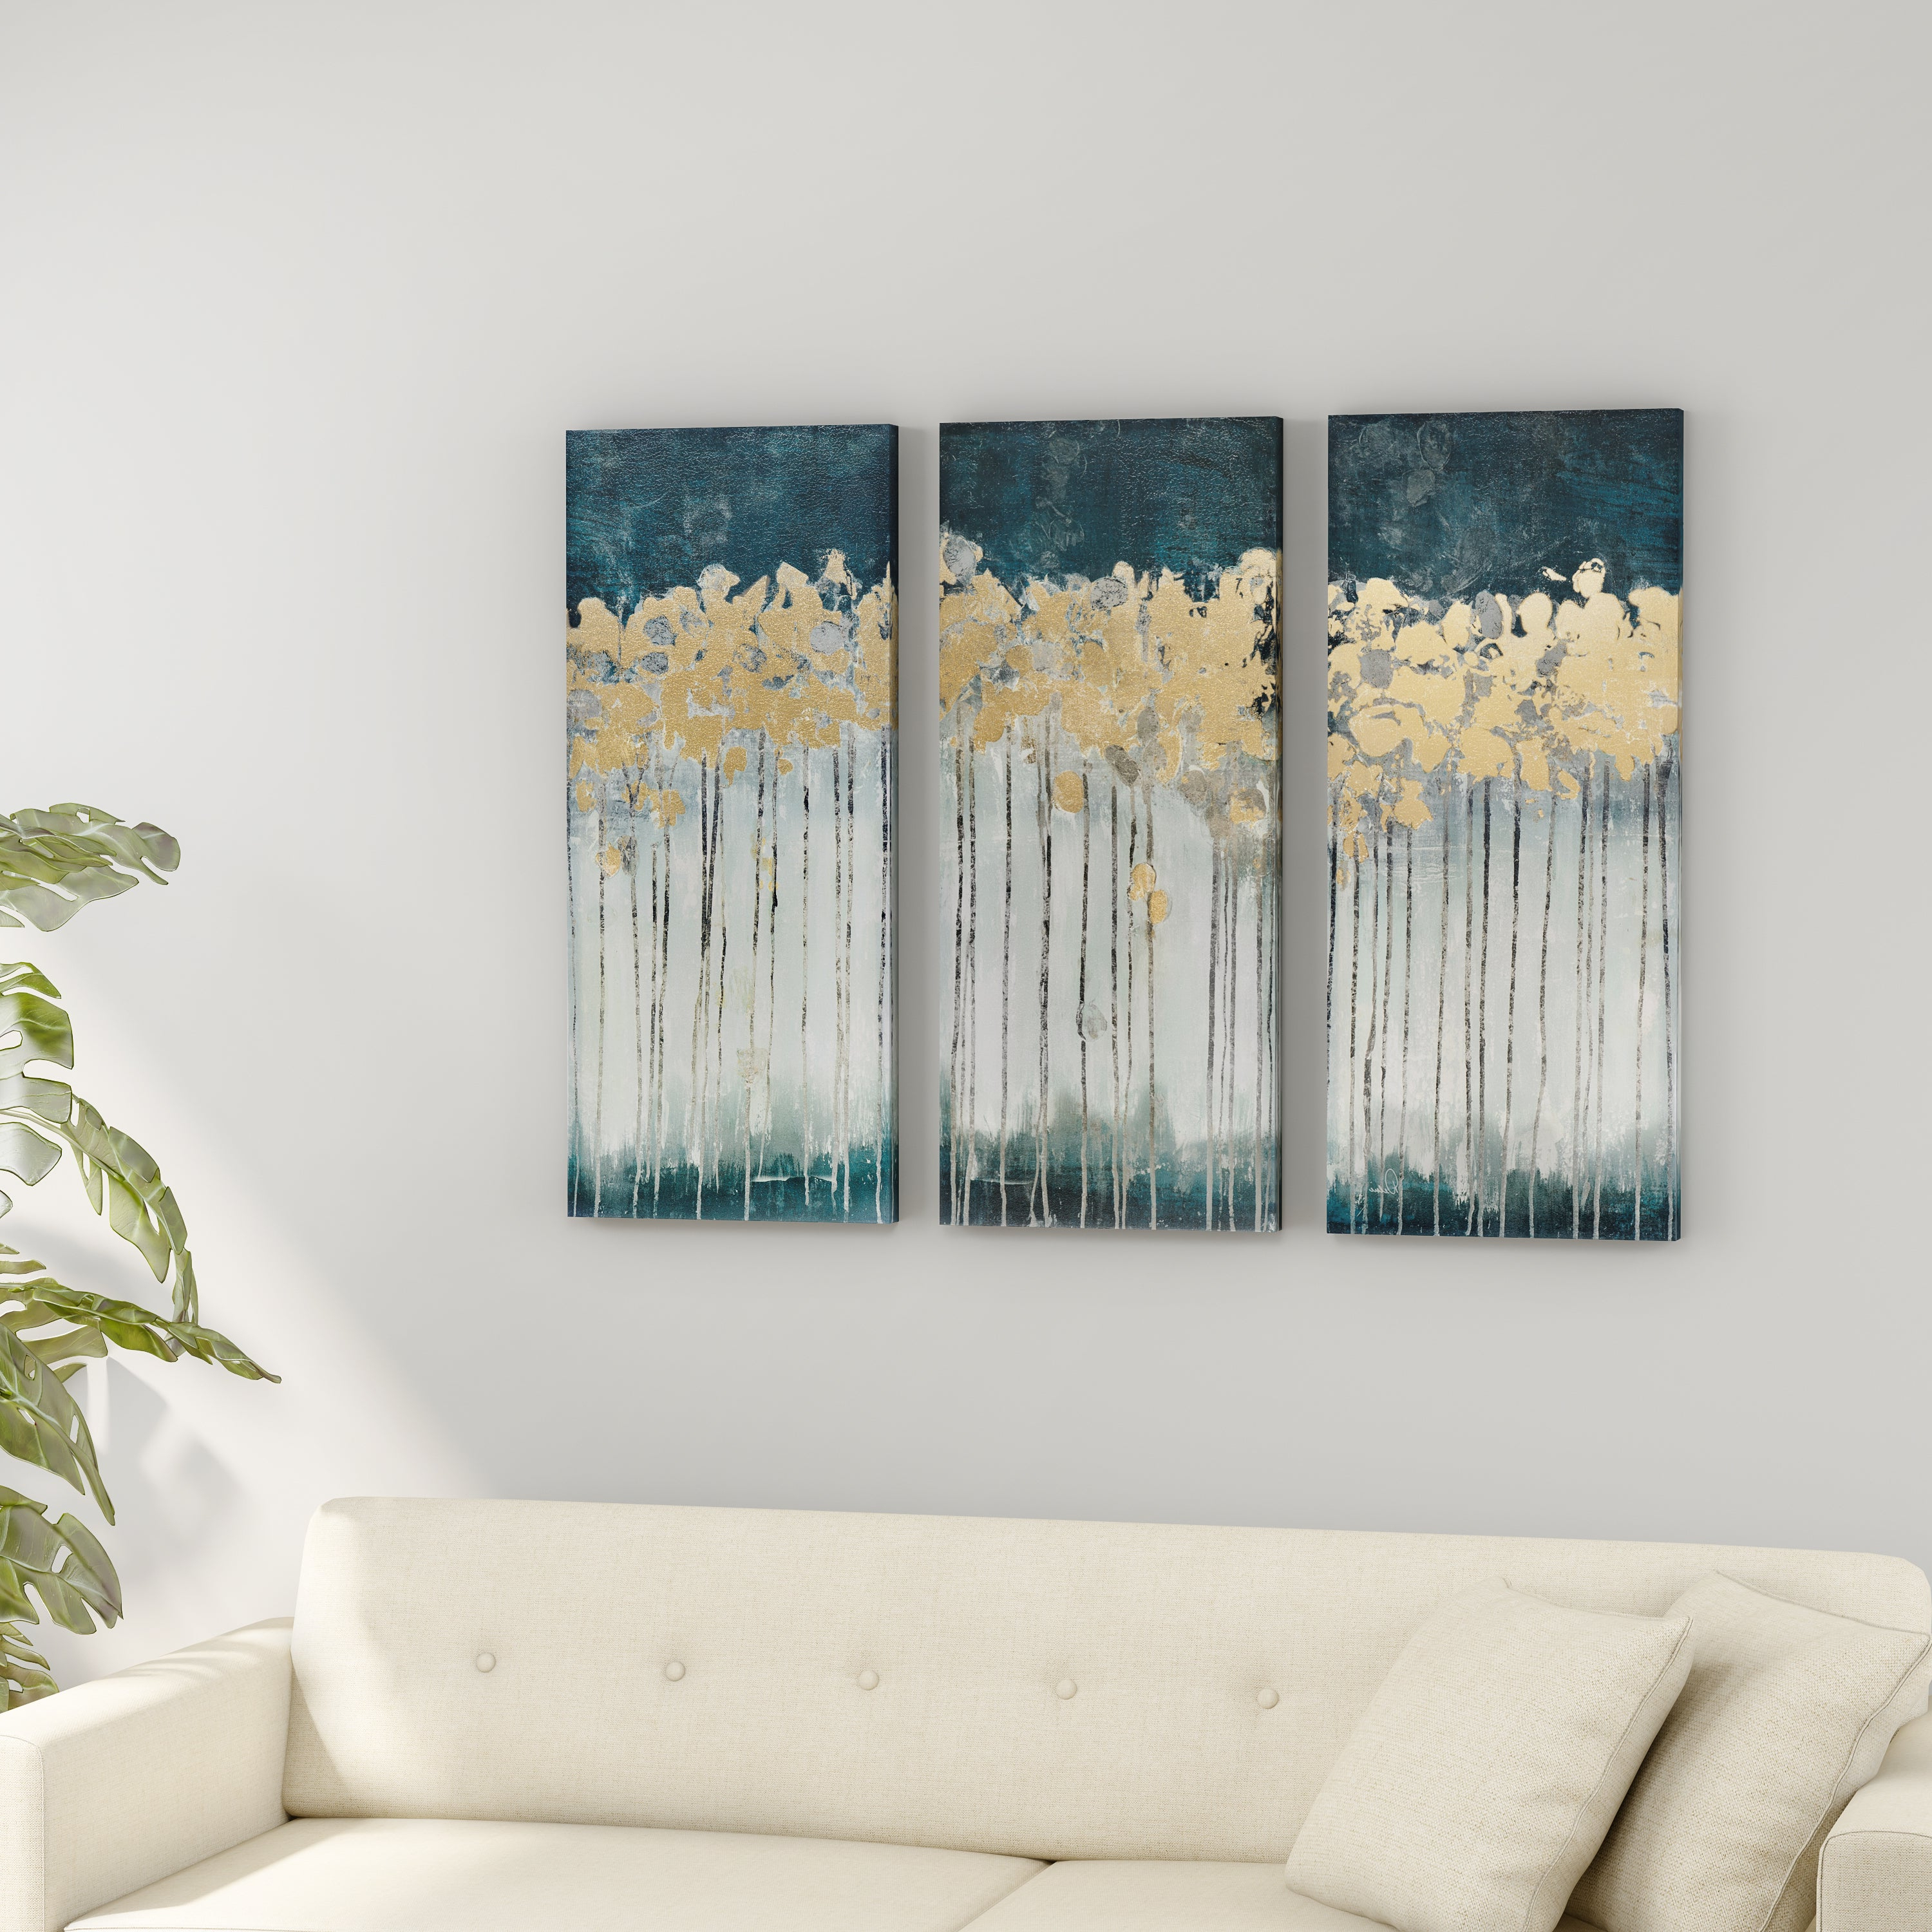 Find Great Art Gallery Deals Shopping At Overstock (View 2 of 20)